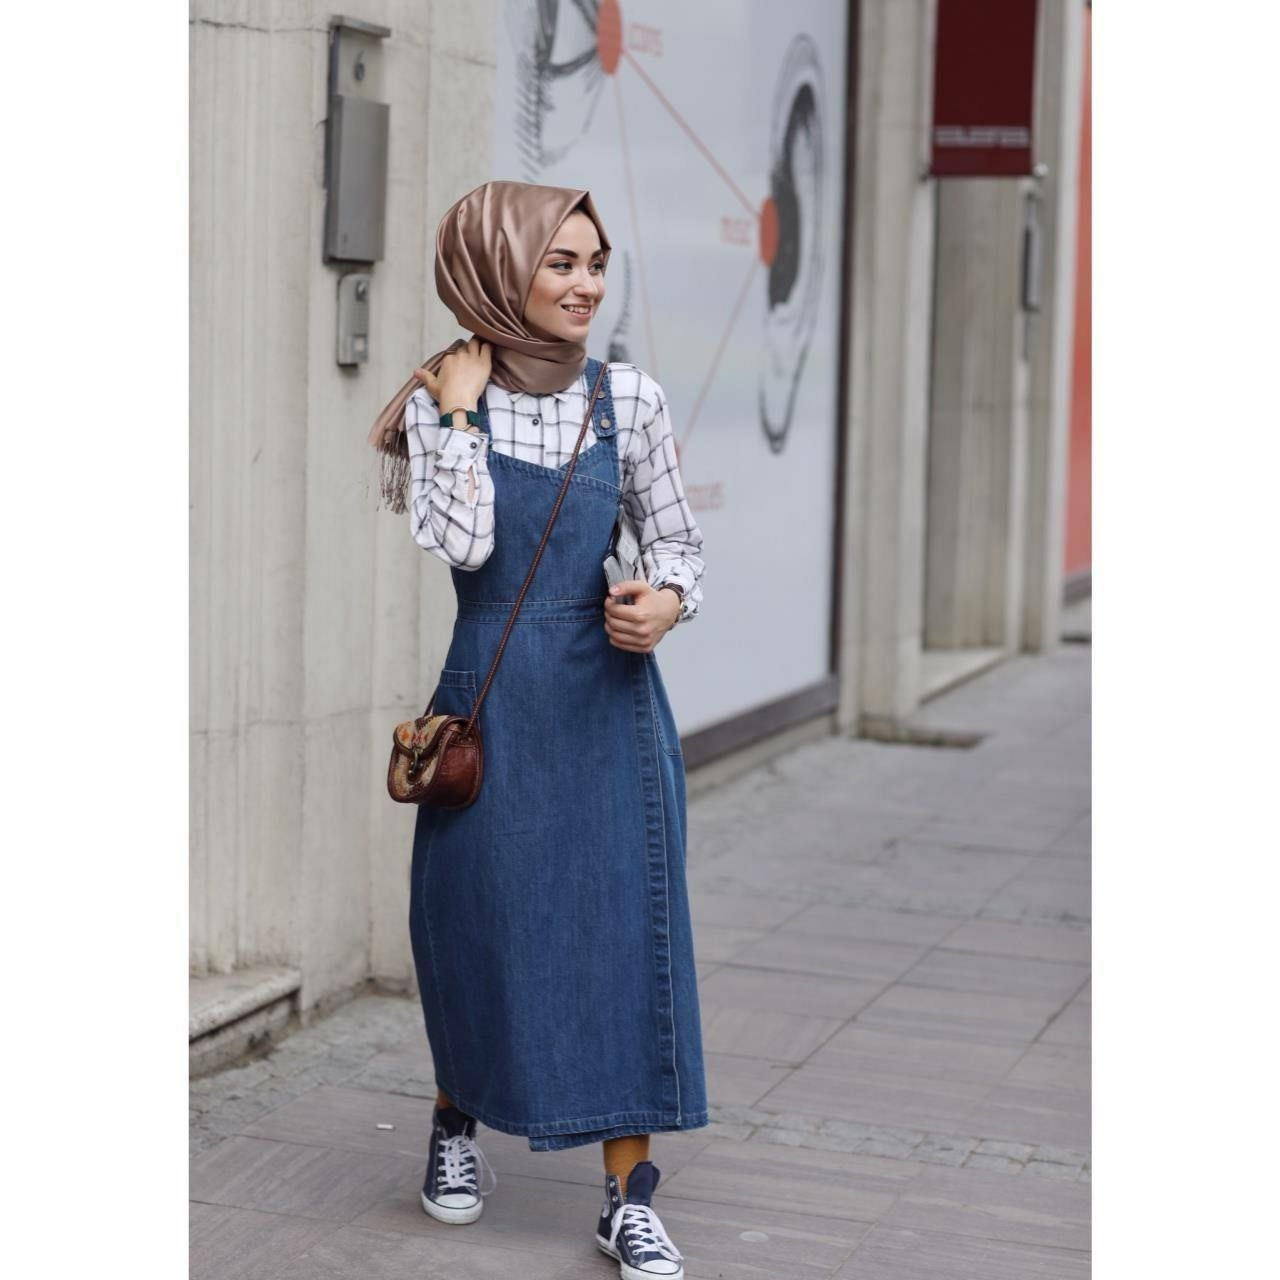 meilleures baskets 55d8b e4d7c Pin by Malak Fares on Hijabi fashion | Muslim fashion, Hijab ...